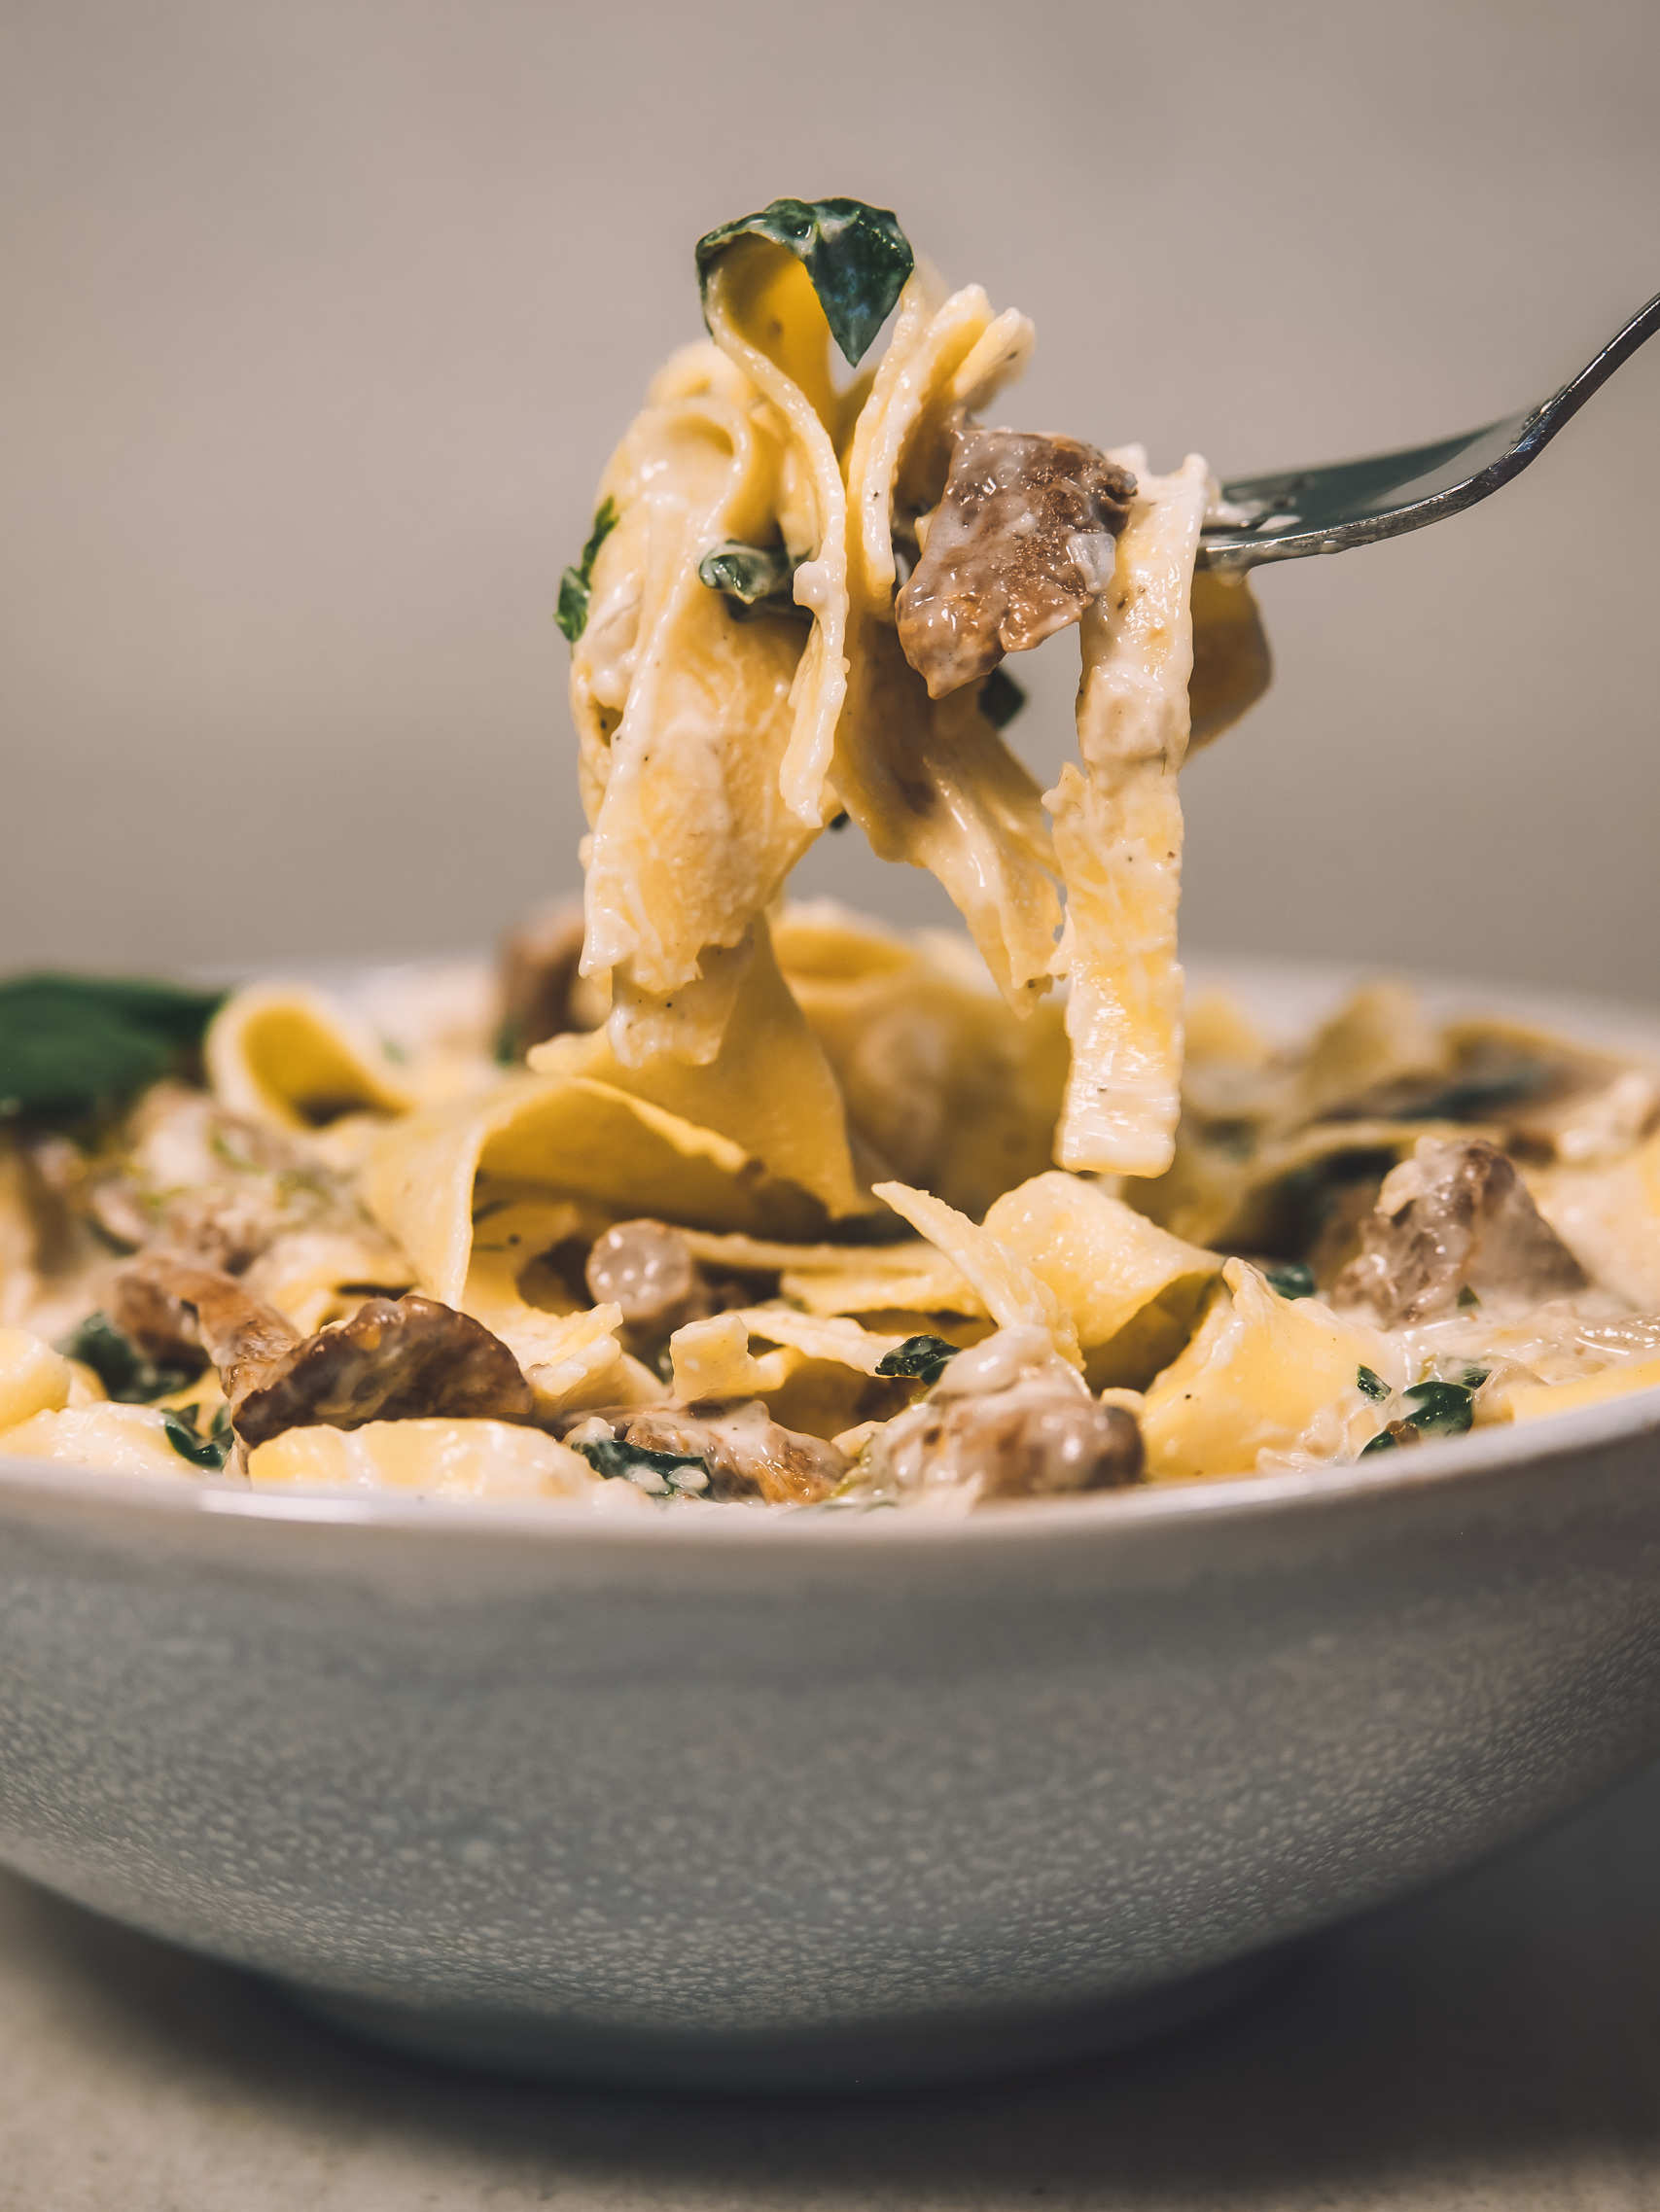 Creamy pasta with chanterelles